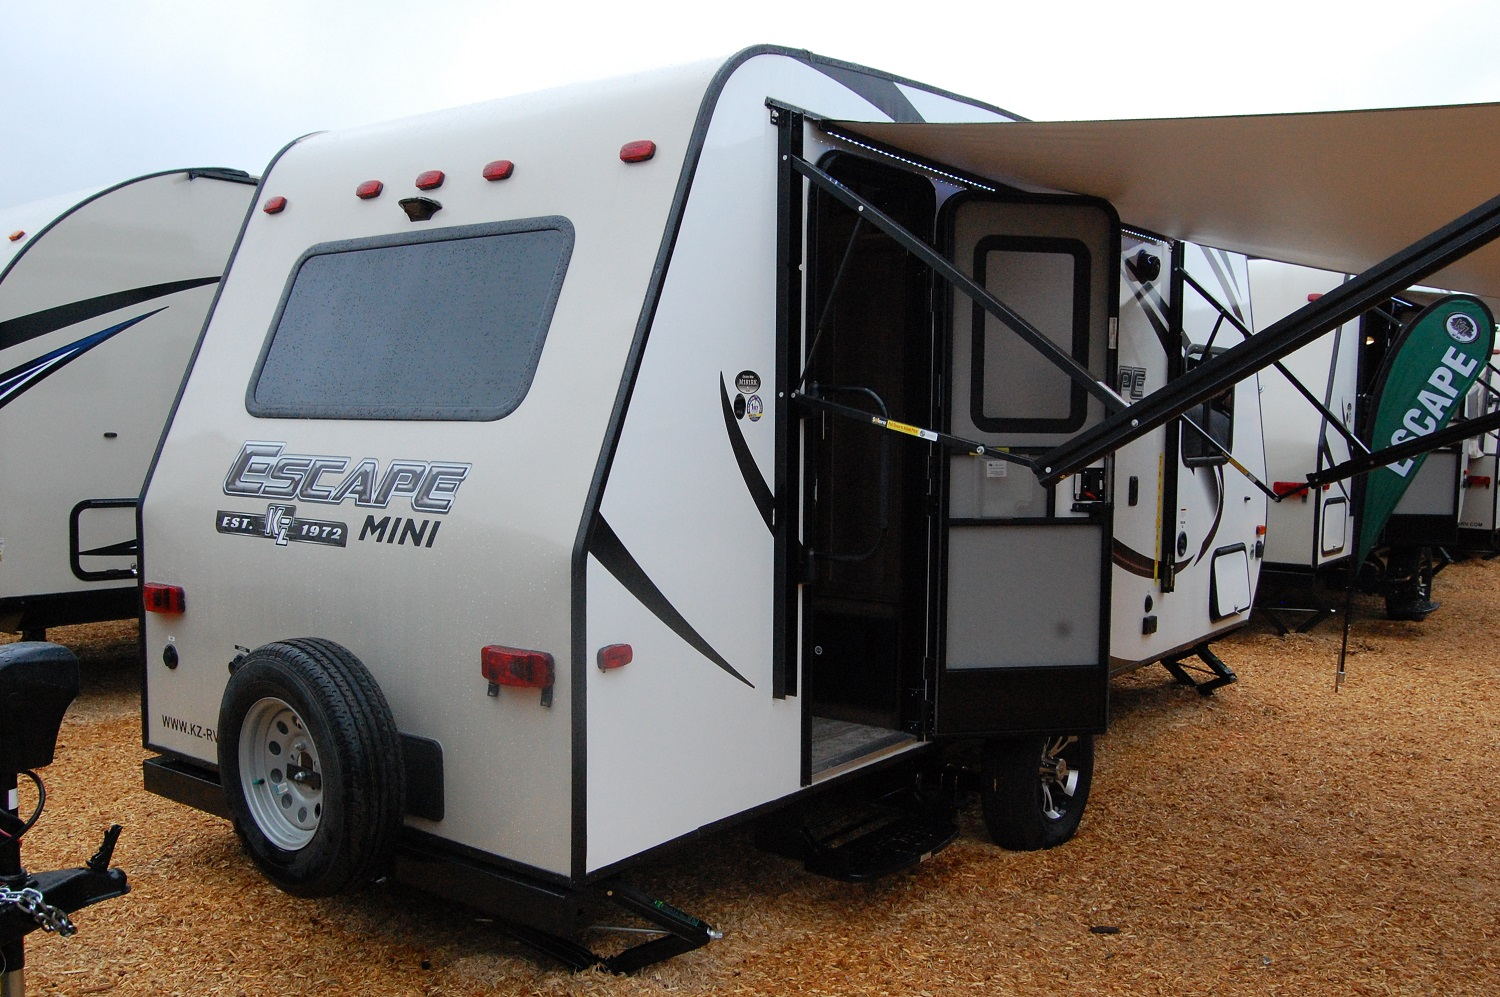 sunset park rv | The Small Trailer Enthusiast